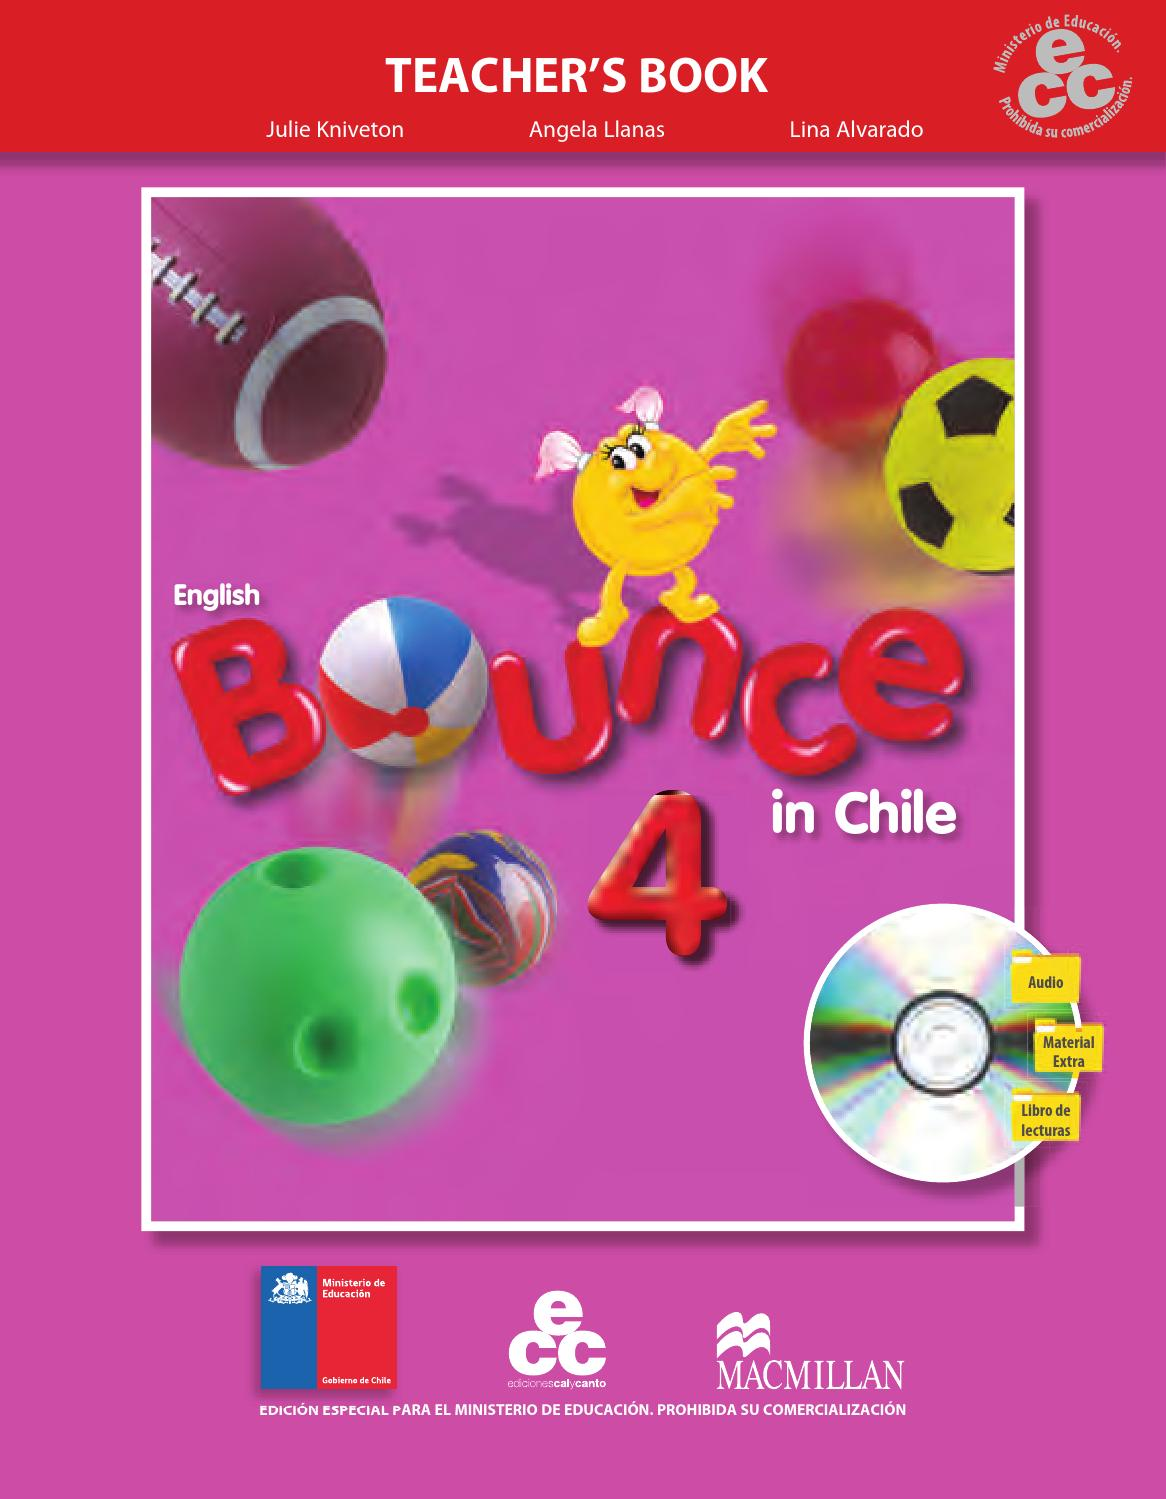 Bounce 4 in chile teachers book by kdaniels24 - issuu